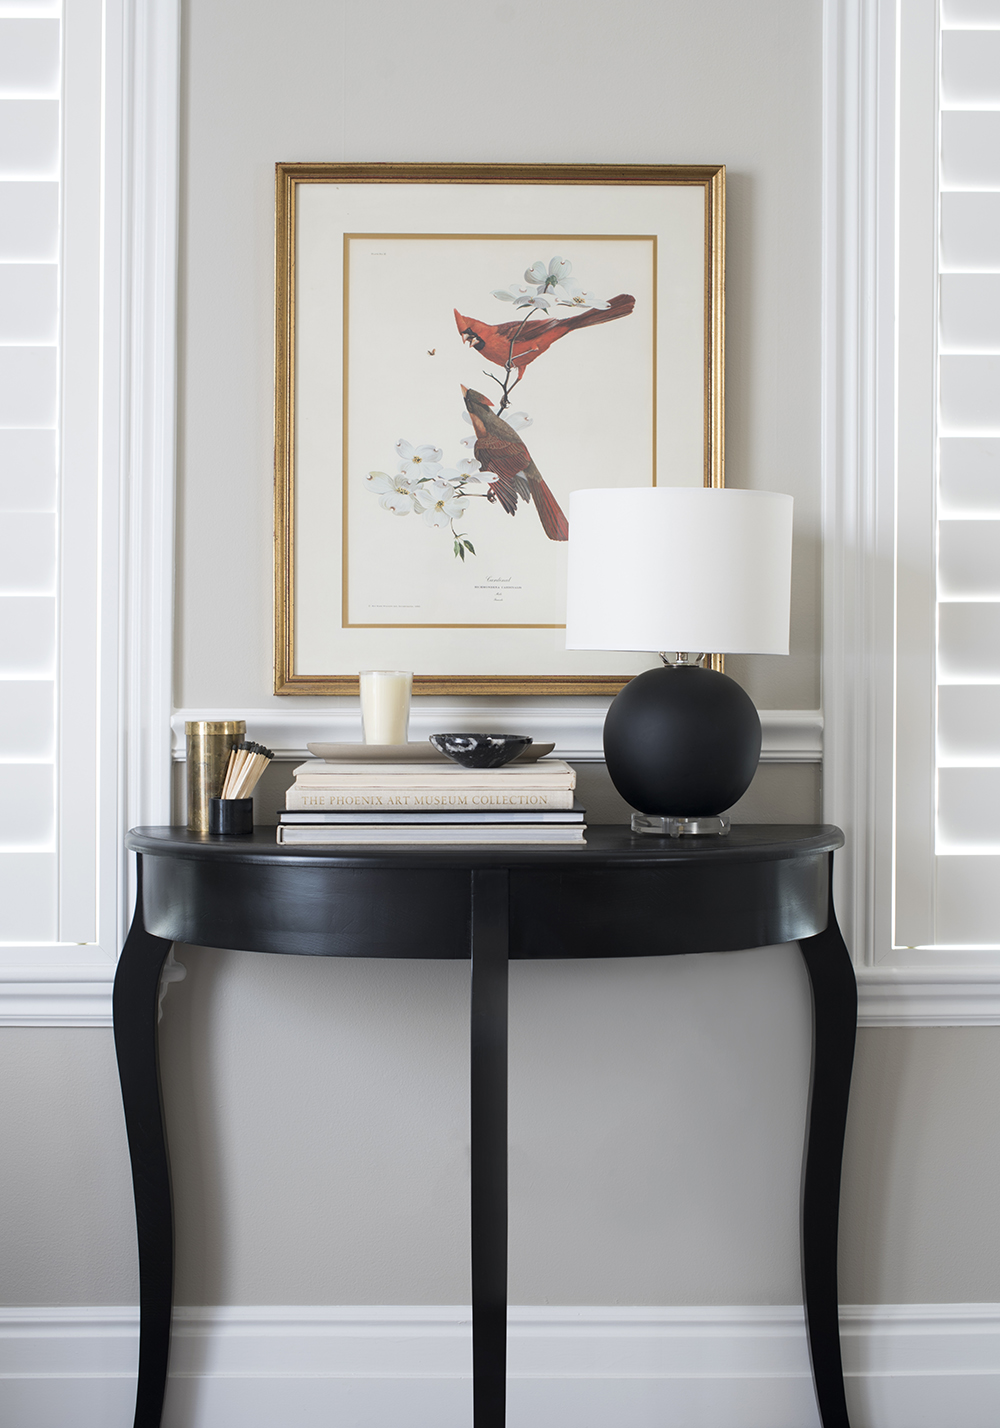 2021 Design Trends : What's In & Out - roomfortuesday.com